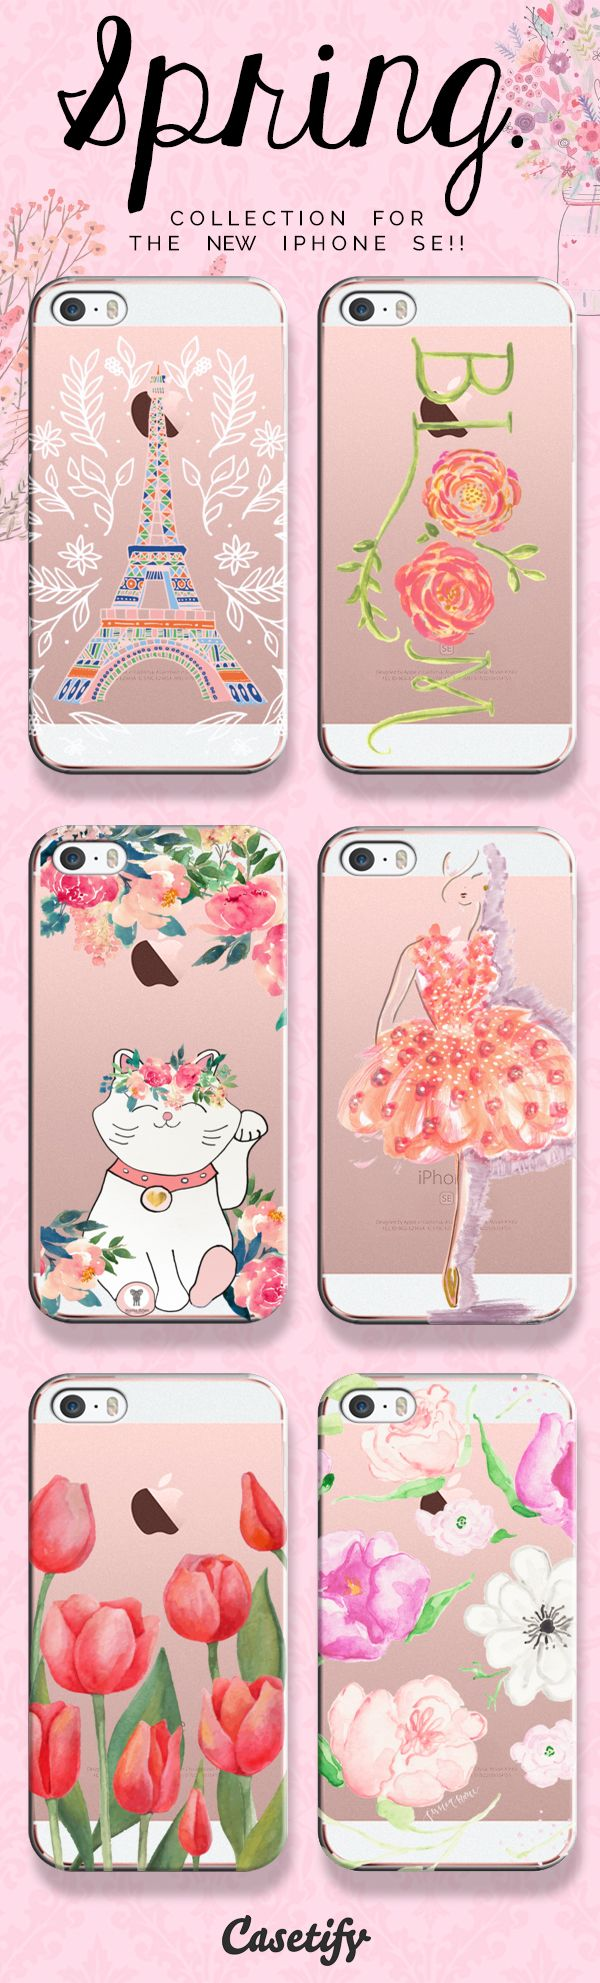 pinterest: @jaidyngrace Take a look at our Spring collection for the new iPhone SE!! | @casetify